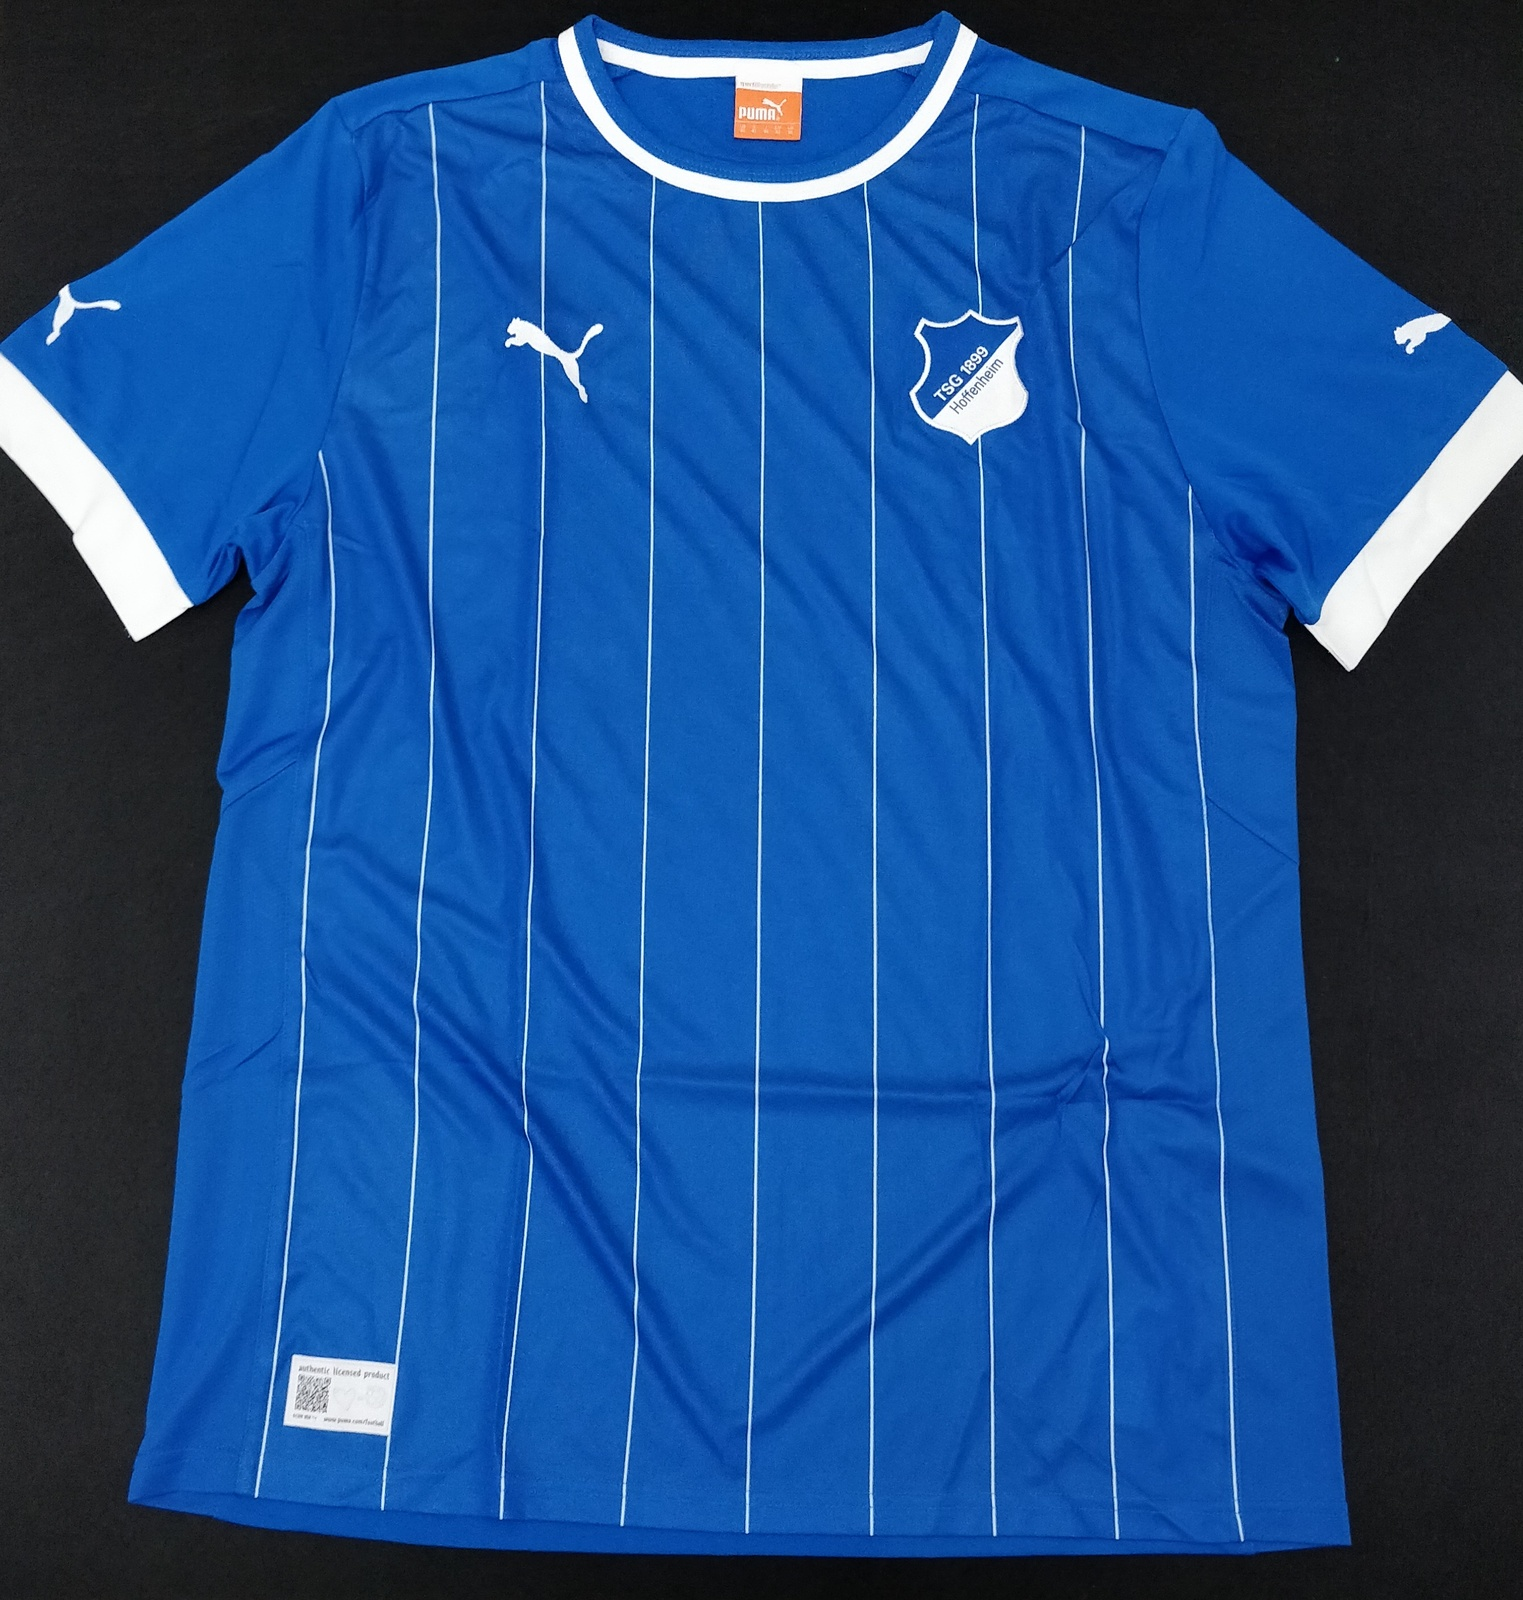 Primary image for Hoffenheim 12/13 Blue Jersey Puma Fans Version %100 Authentic